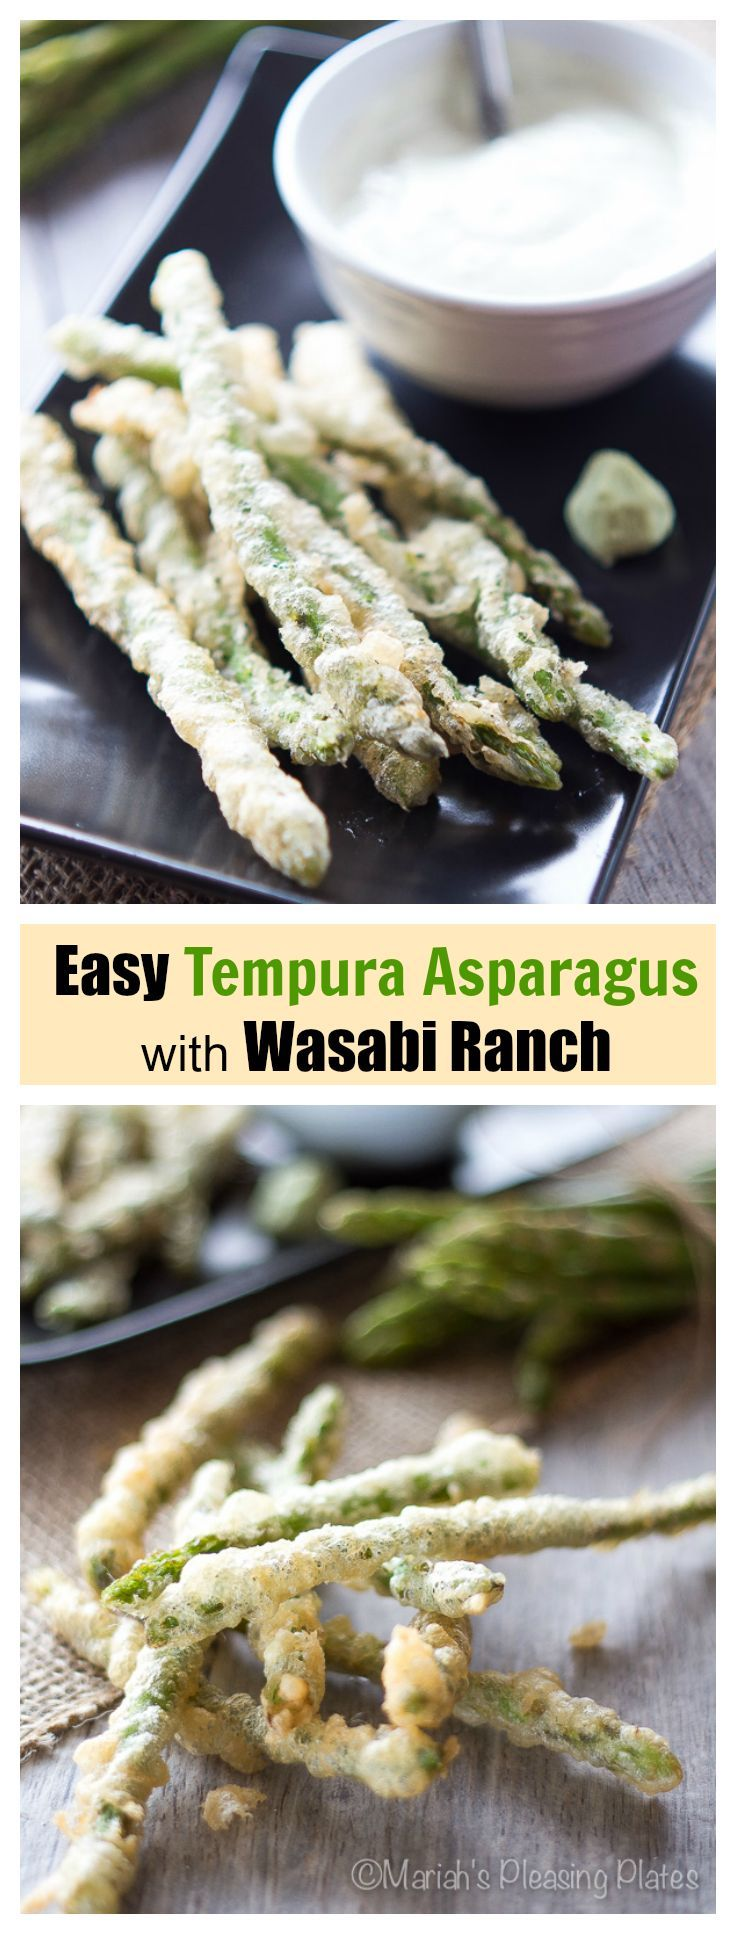 This Tempura Asparagus with Wasabi Ranch takes only 10 minutes to make and is so easy! It will be your new favorite side dish for weeknight meals!